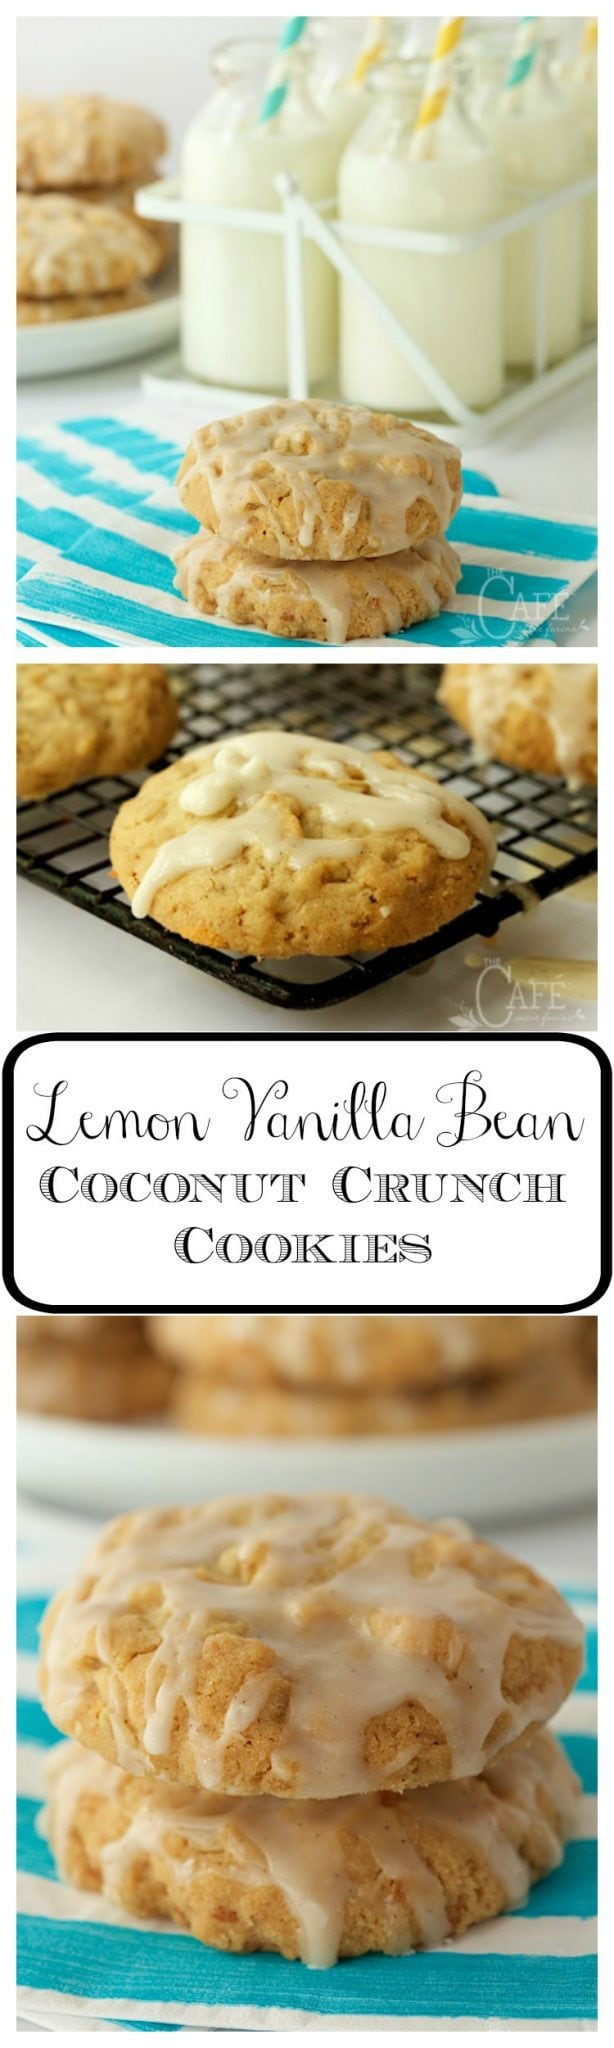 Lemon Vanilla Bean Coconut Crunch Cookies - the name explains a lot but it doesn't tell that they're also buttery, crisp and melt-in-your-mouth delicious!